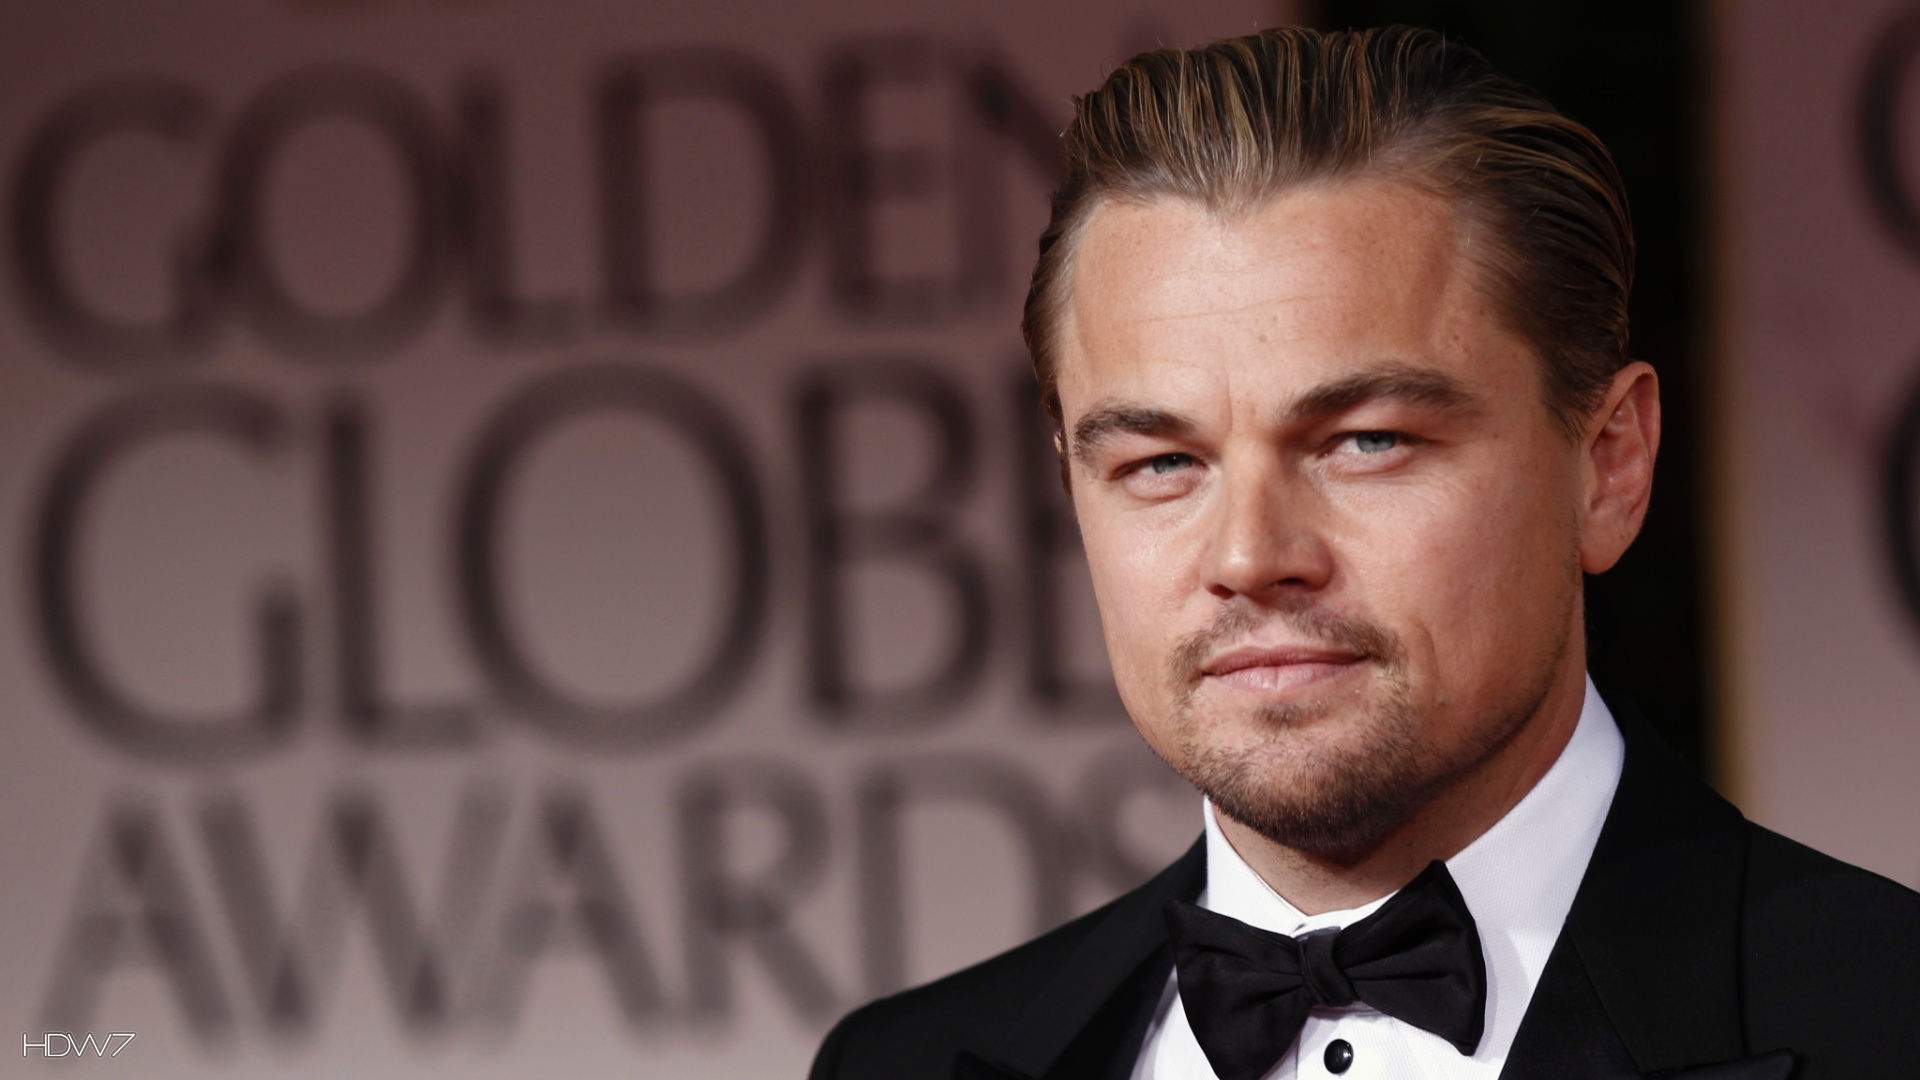 leonardo dicaprio bowtie awards 1920x1080 | hd wallpaper gallery #139